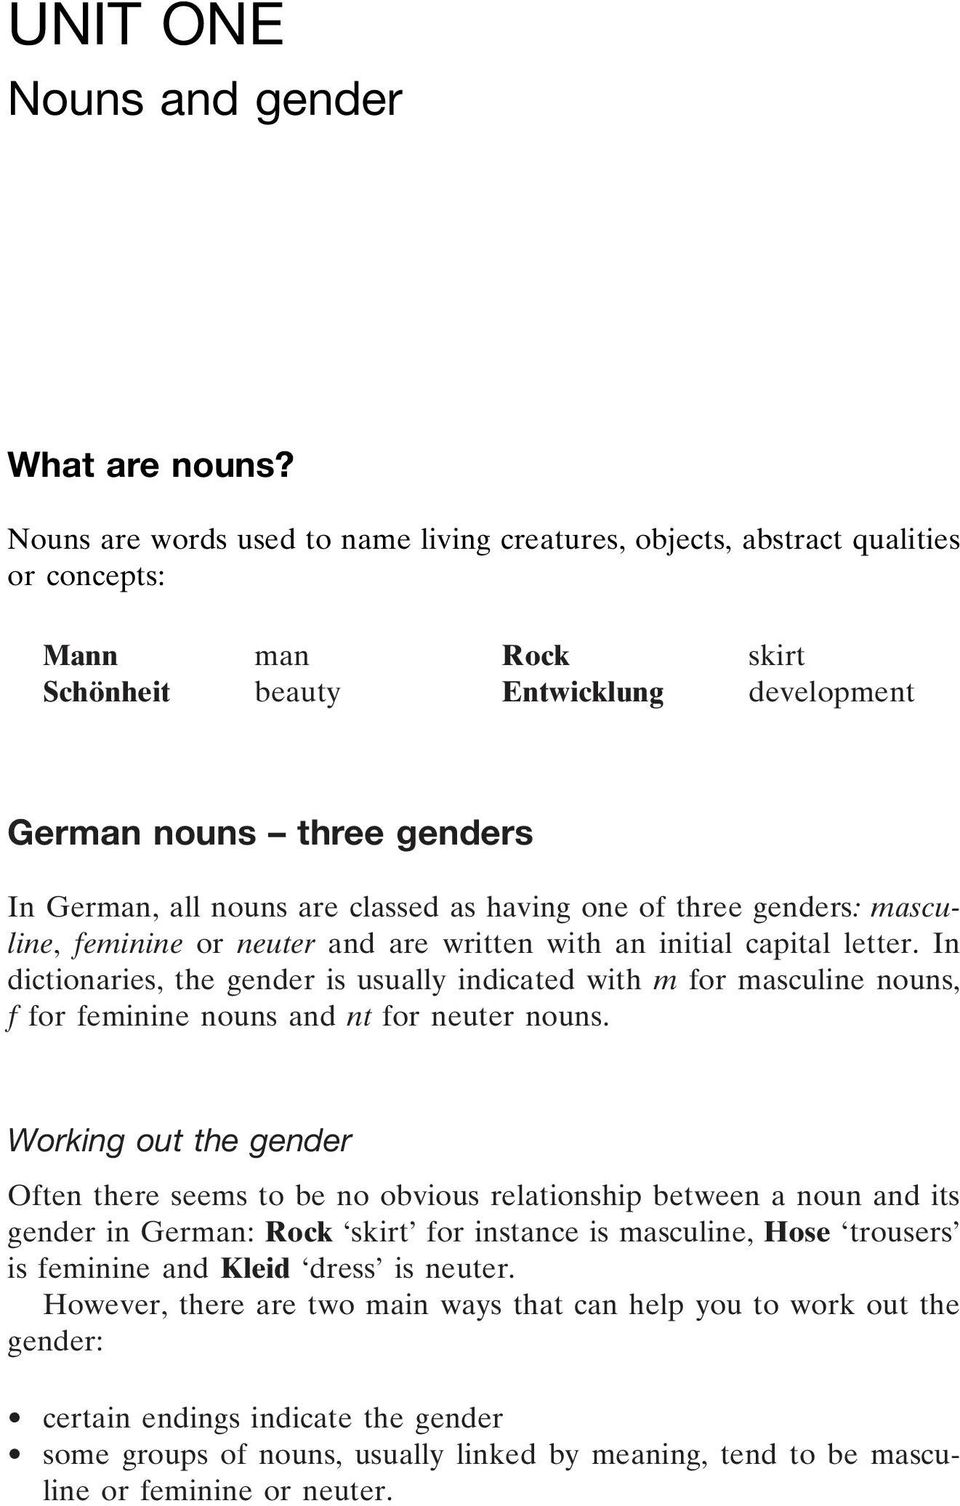 are classed as having one of three genders: masculine, feminine or neuter and are written with an initial capital letter.